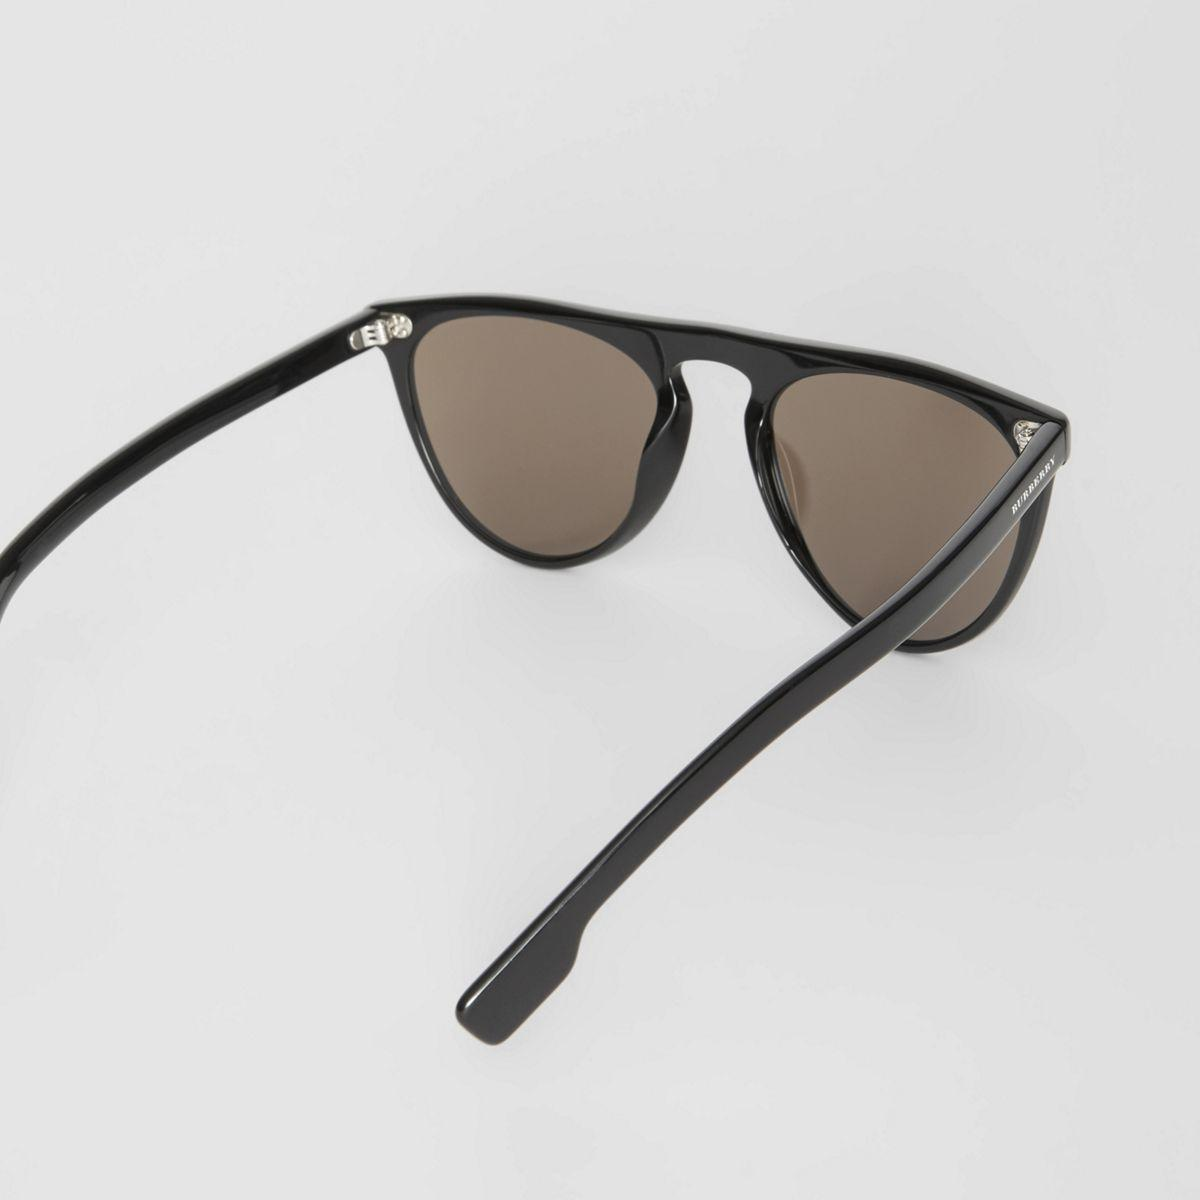 74675757598d Burberry - Black Keyhole D-shaped Sunglasses for Men - Lyst. View fullscreen